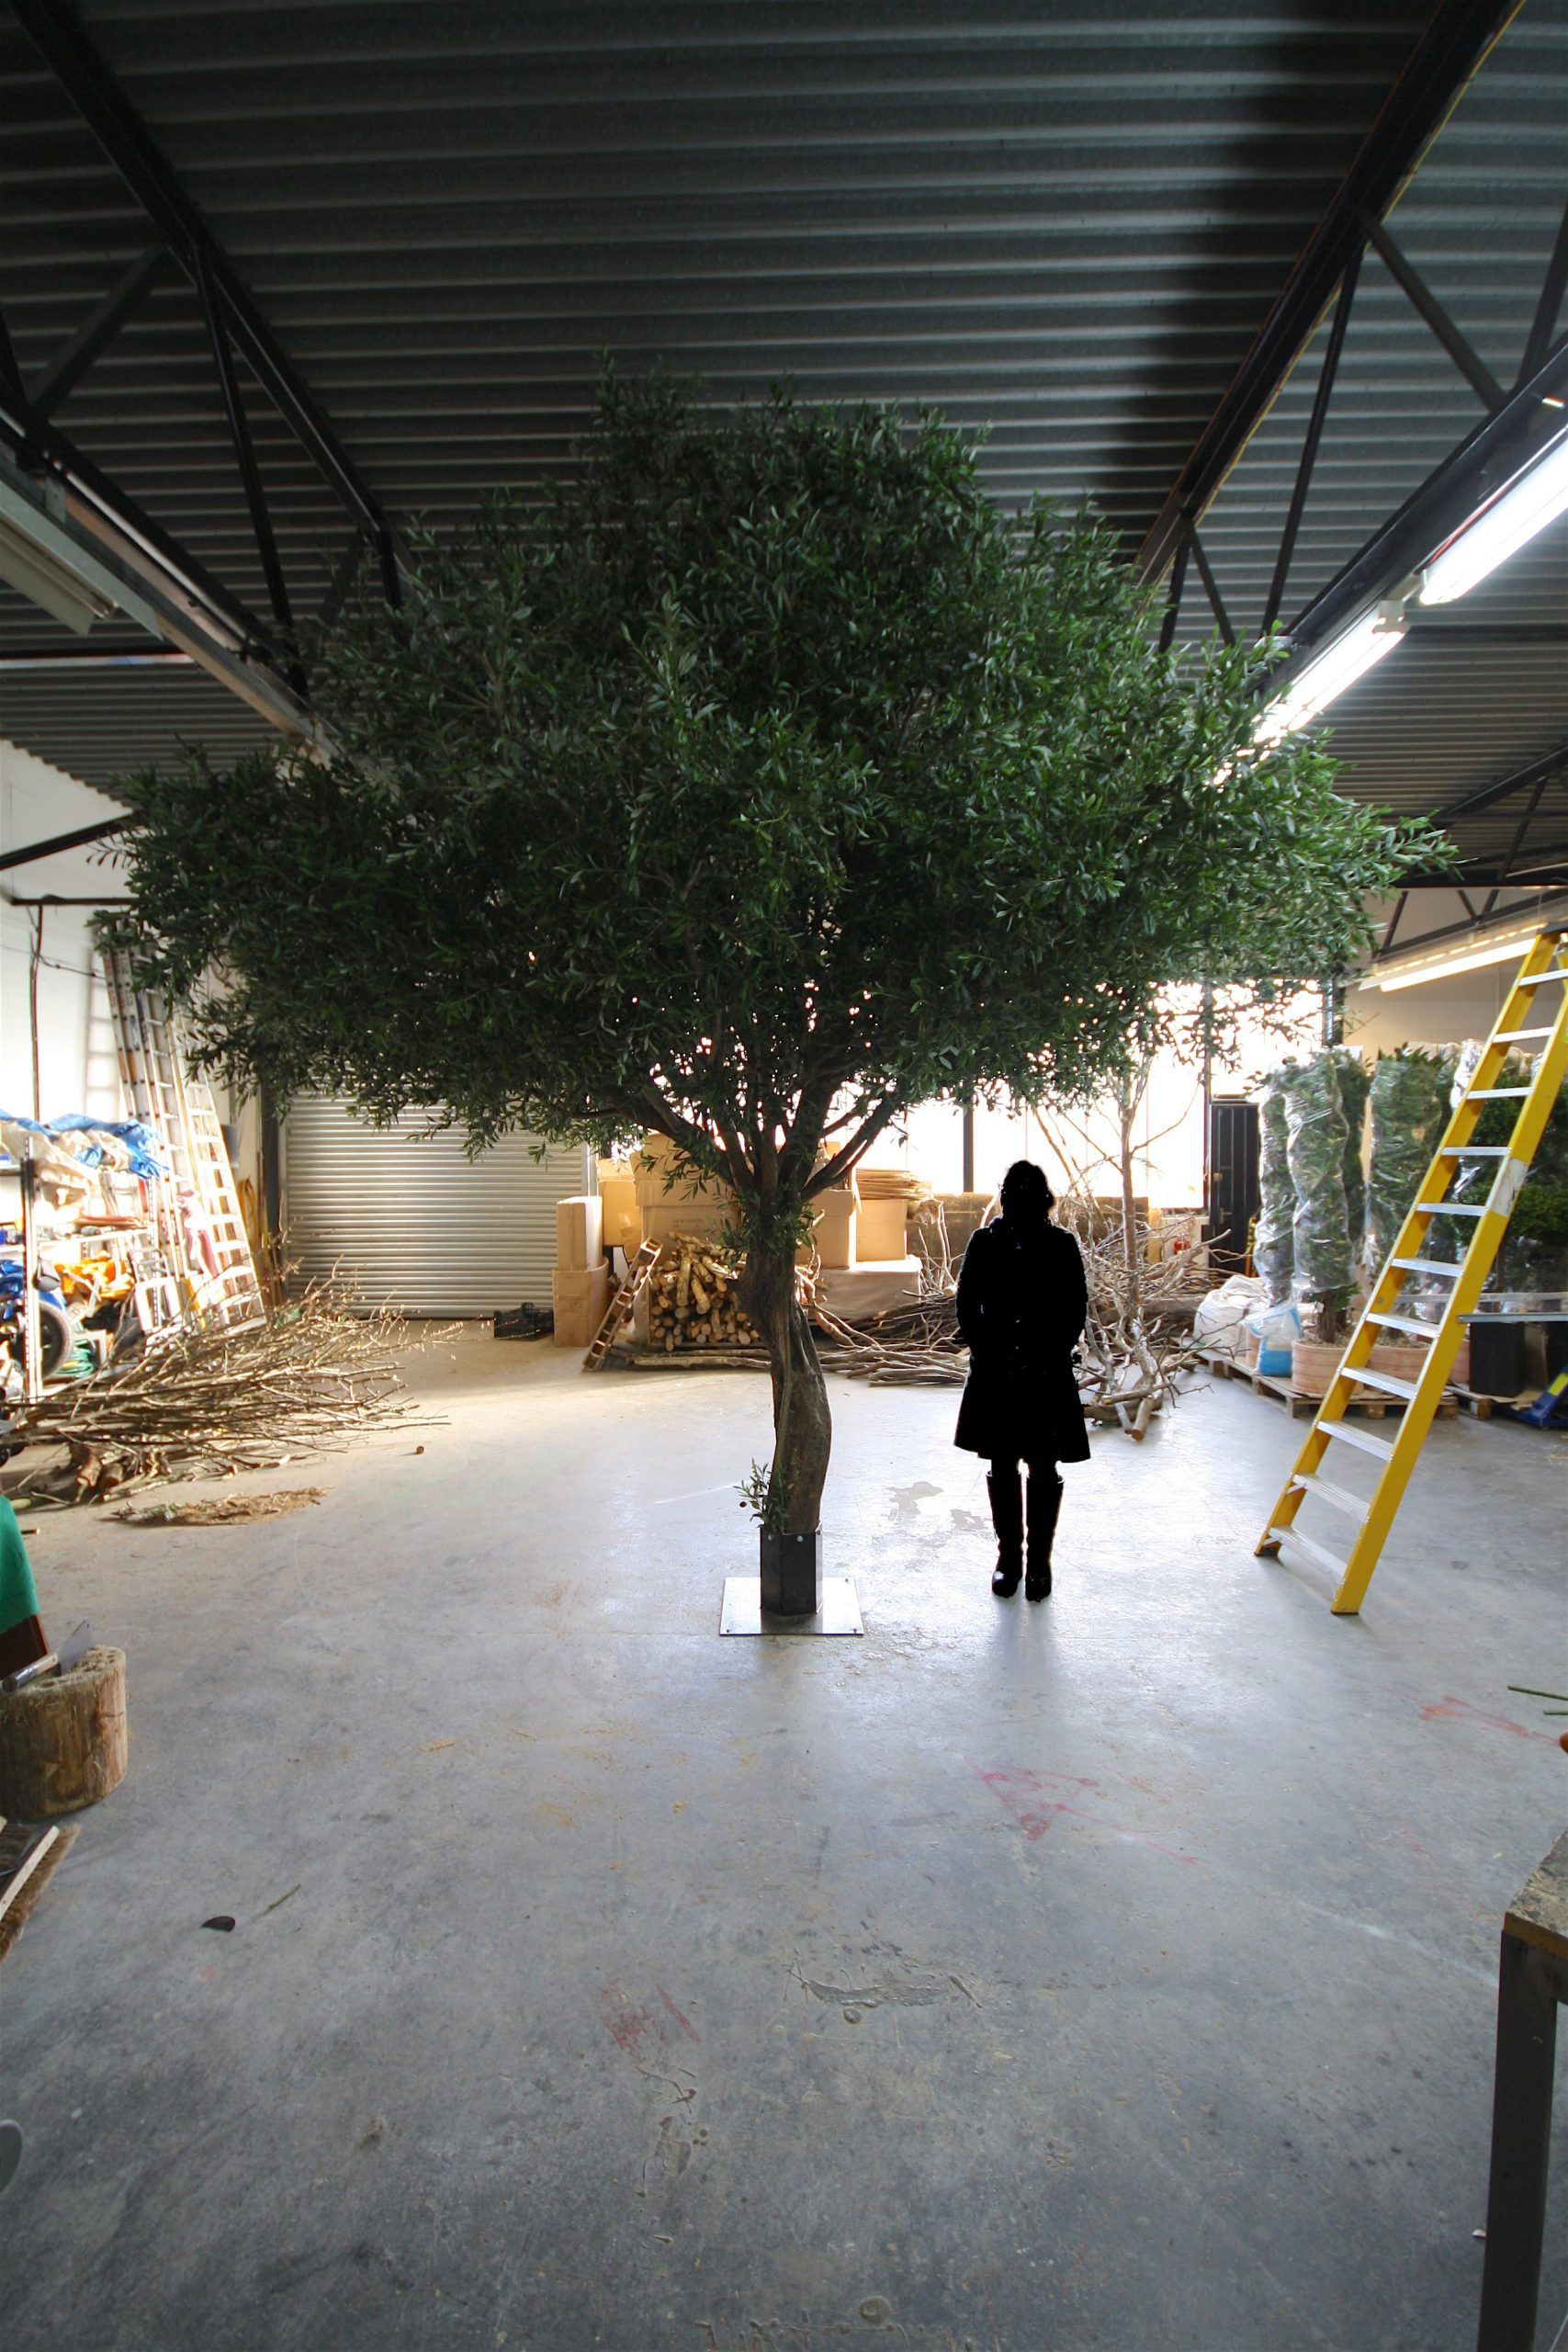 Large Fake Mediterranean Olive Tree For Restaurant In Greece Fakeolivetree Oli Fake Fakeolivetree Greece Larg In 2020 Fake Indoor Trees Indoor Trees Fake Trees